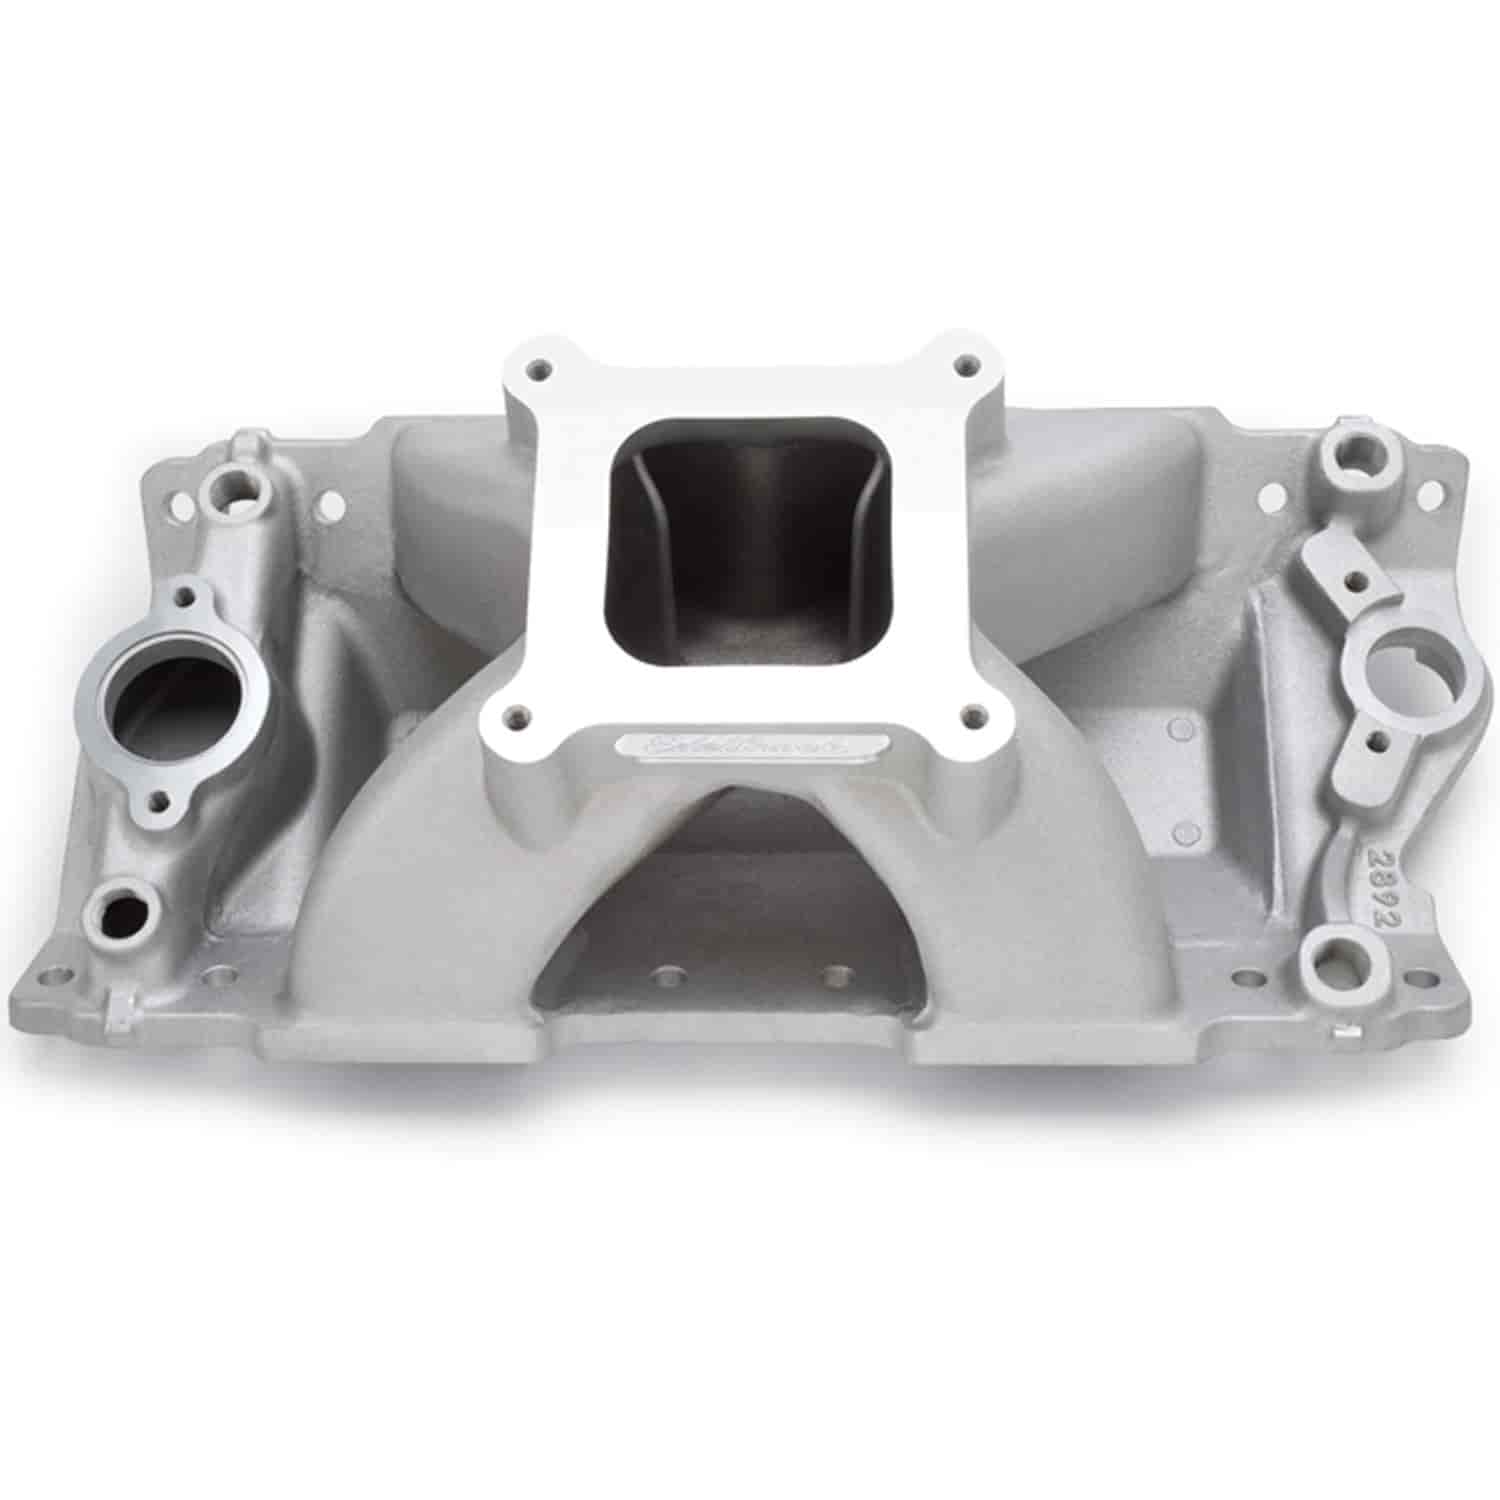 Edelbrock 2892 - Edelbrock Victor Series Intake Manifolds for Small Block Chevy